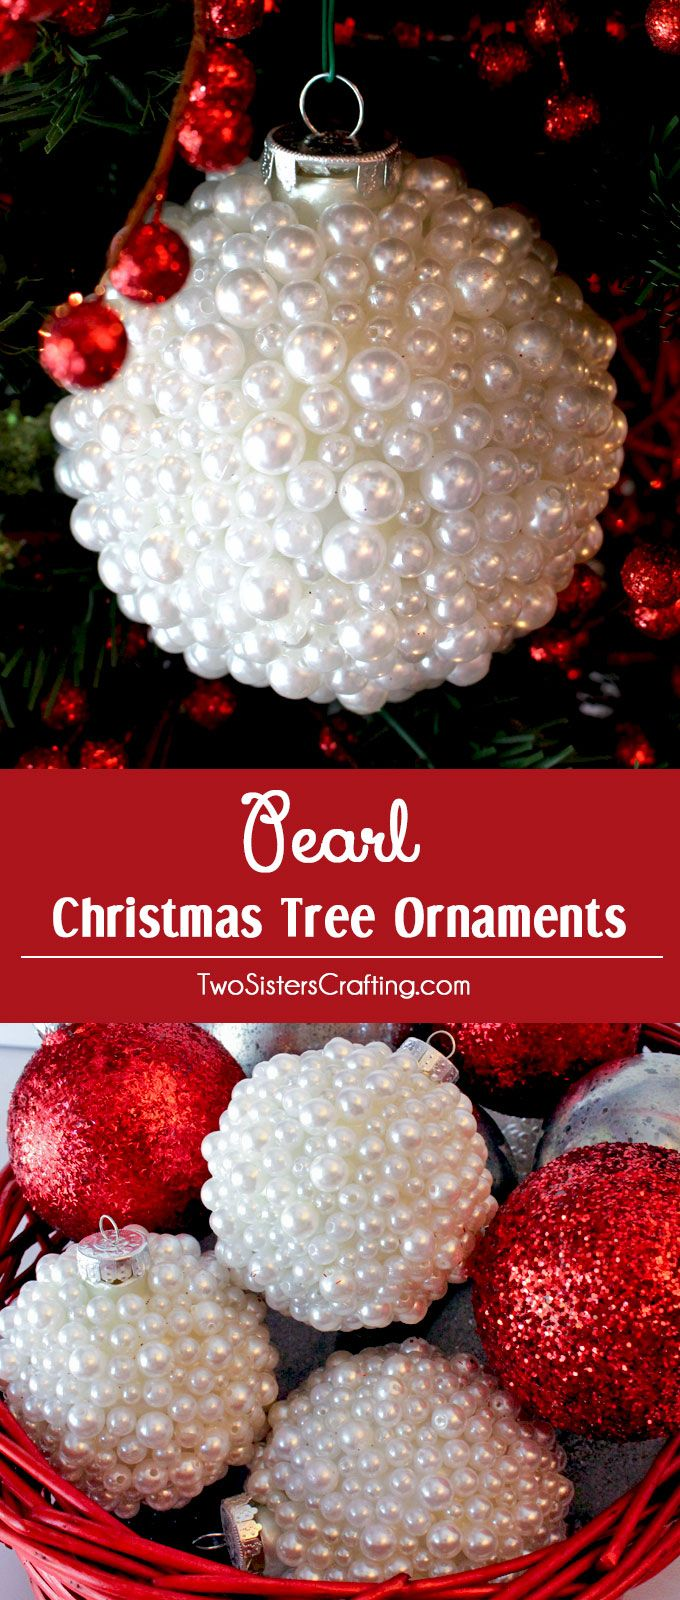 These Pearl Christmas Tree Ornaments are a